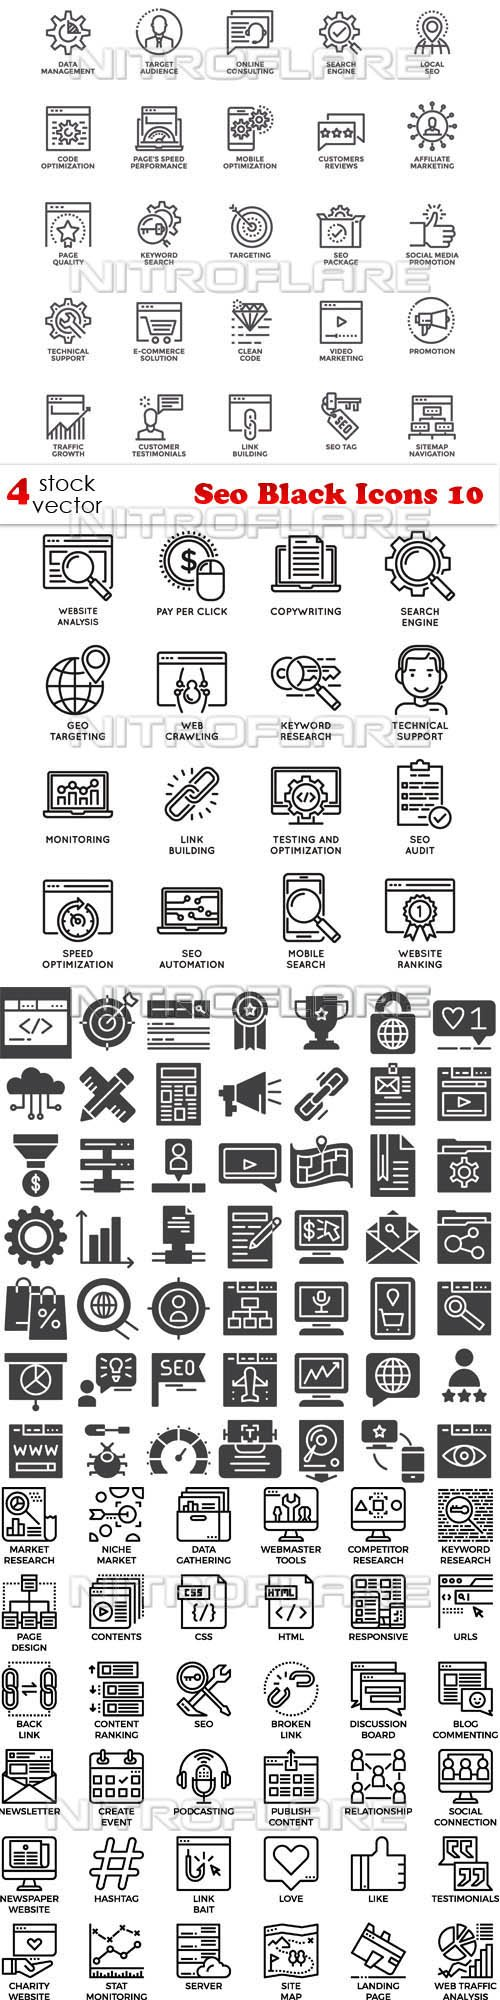 Vectors - Seo Black Icons 10